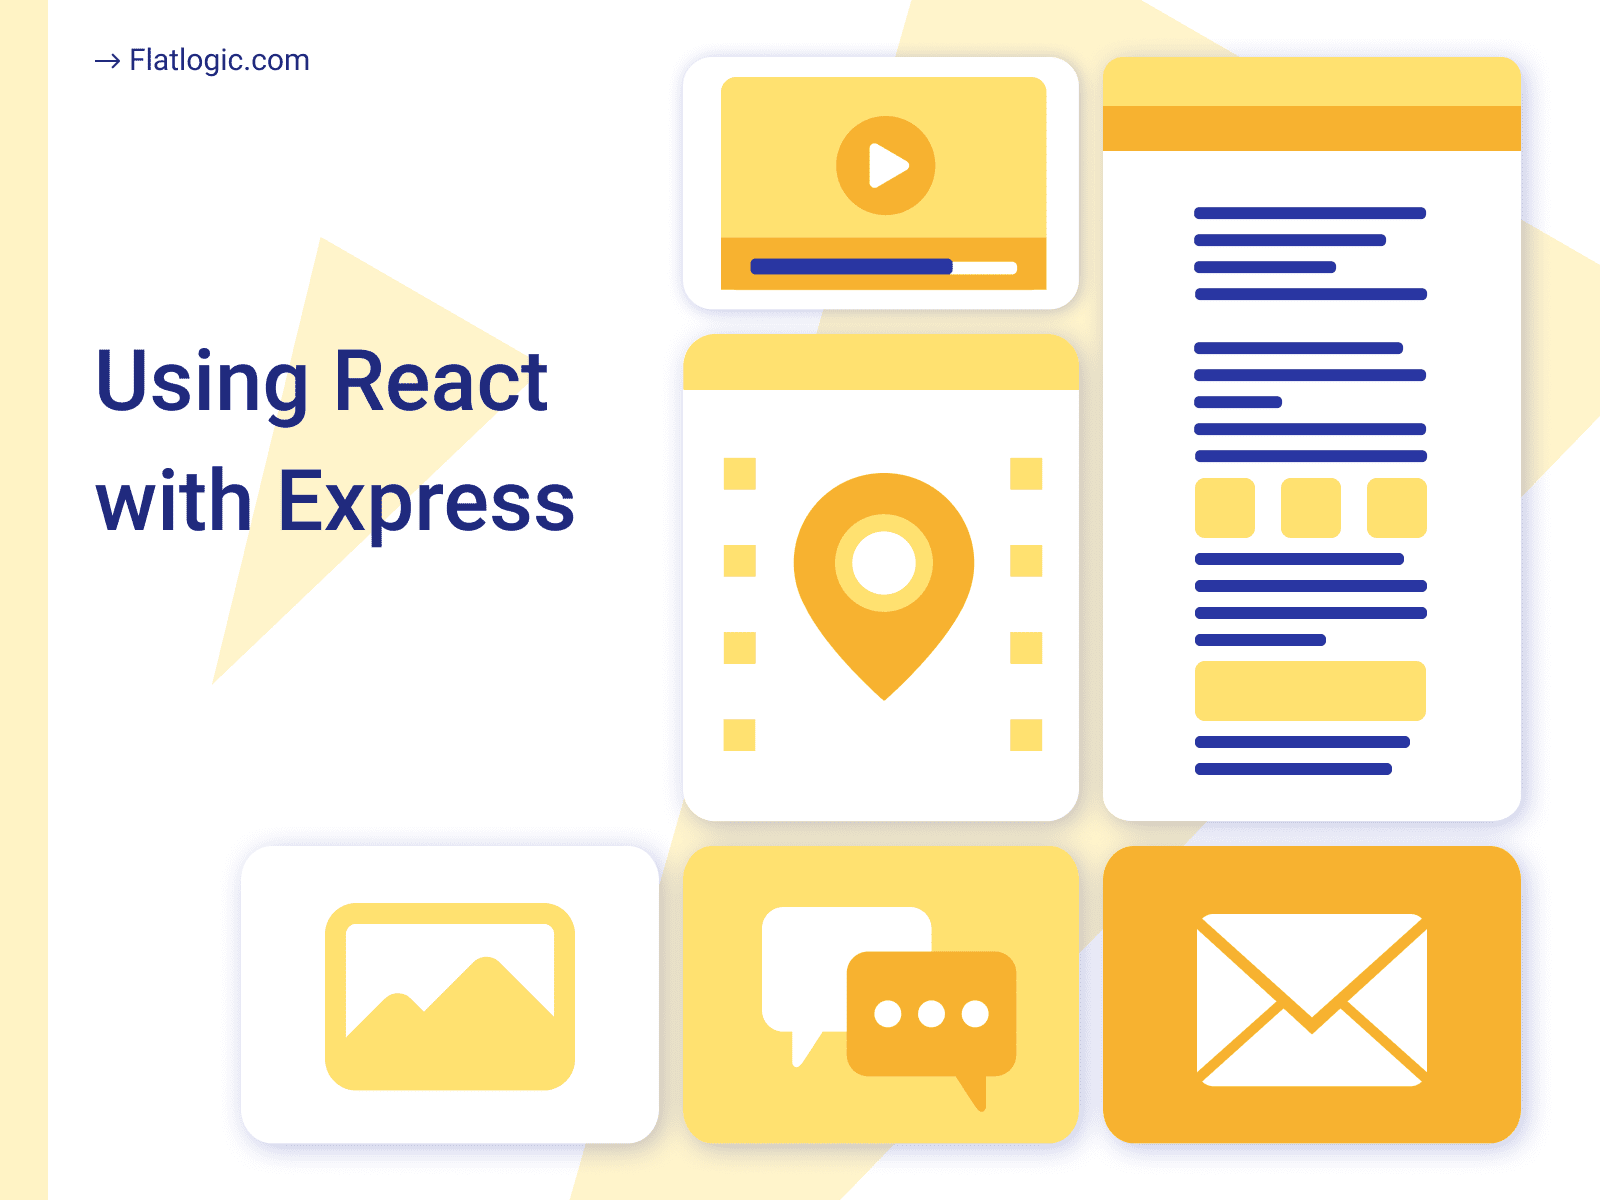 Using React with Express